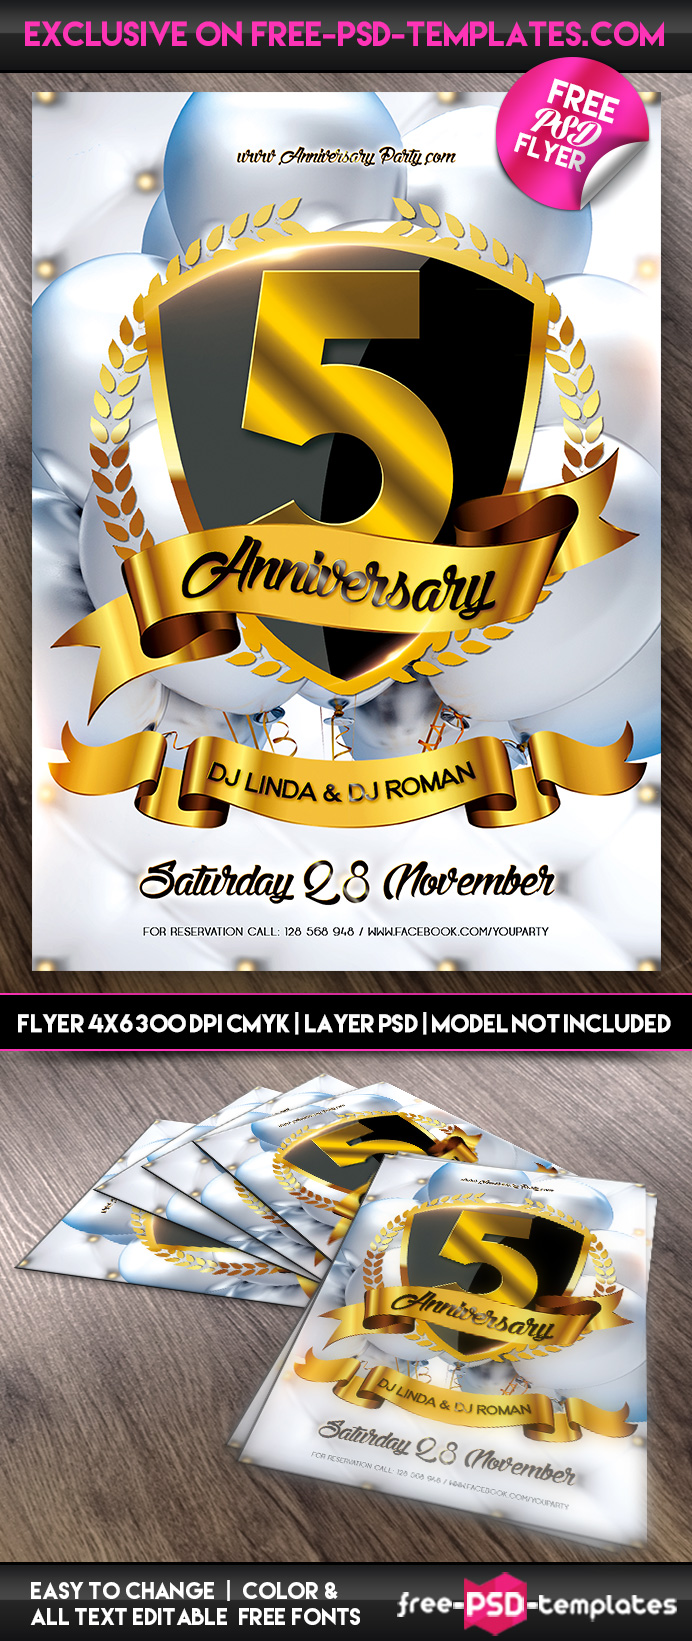 Anniversary Party - Flyer PSD Template | Free PSD Templates